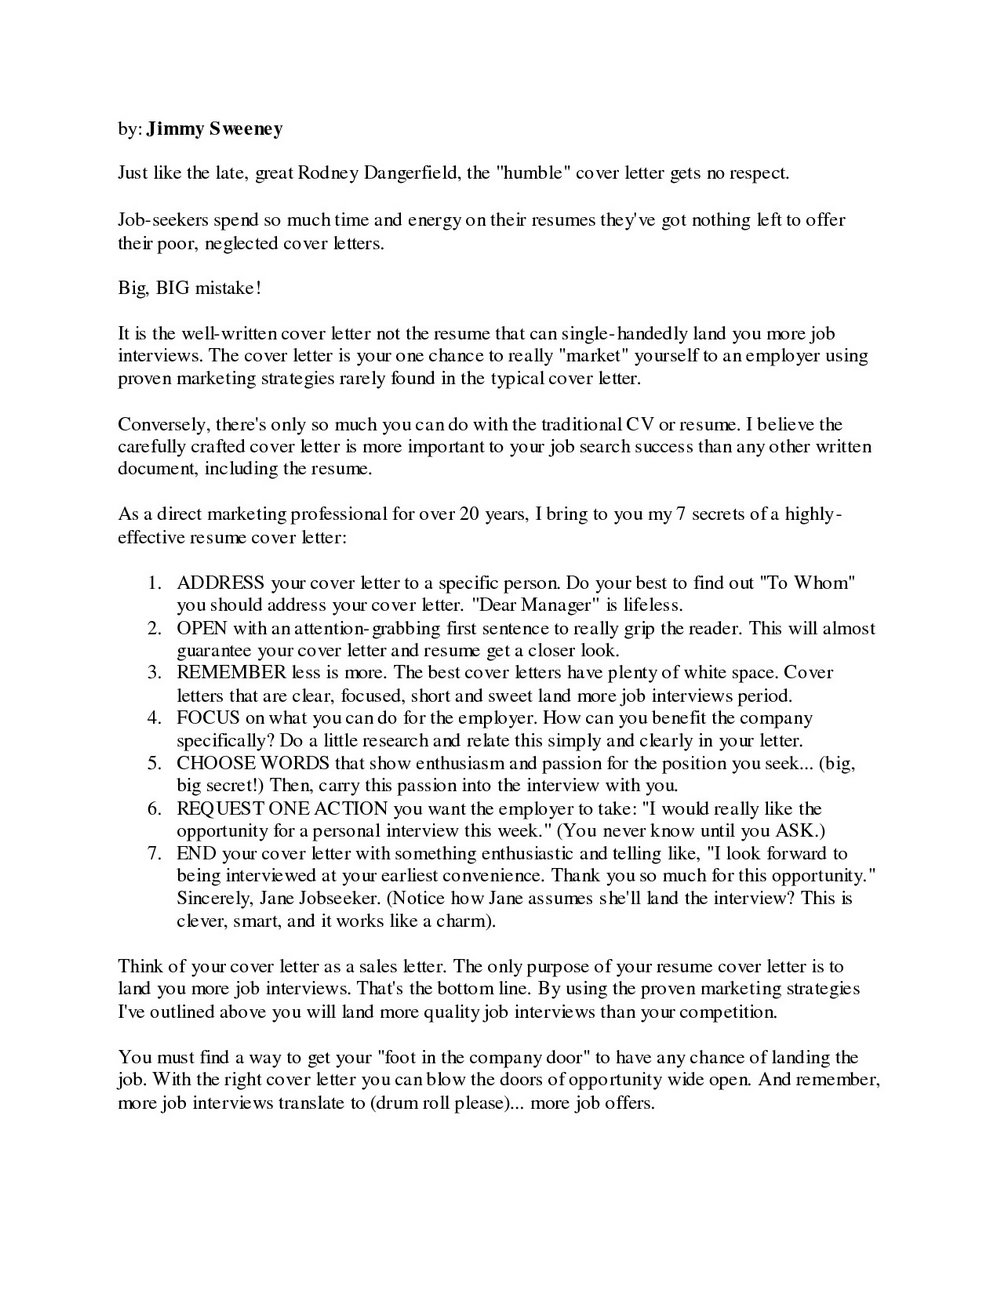 Jimmy Sweeney Cover Letter Creator Free Download